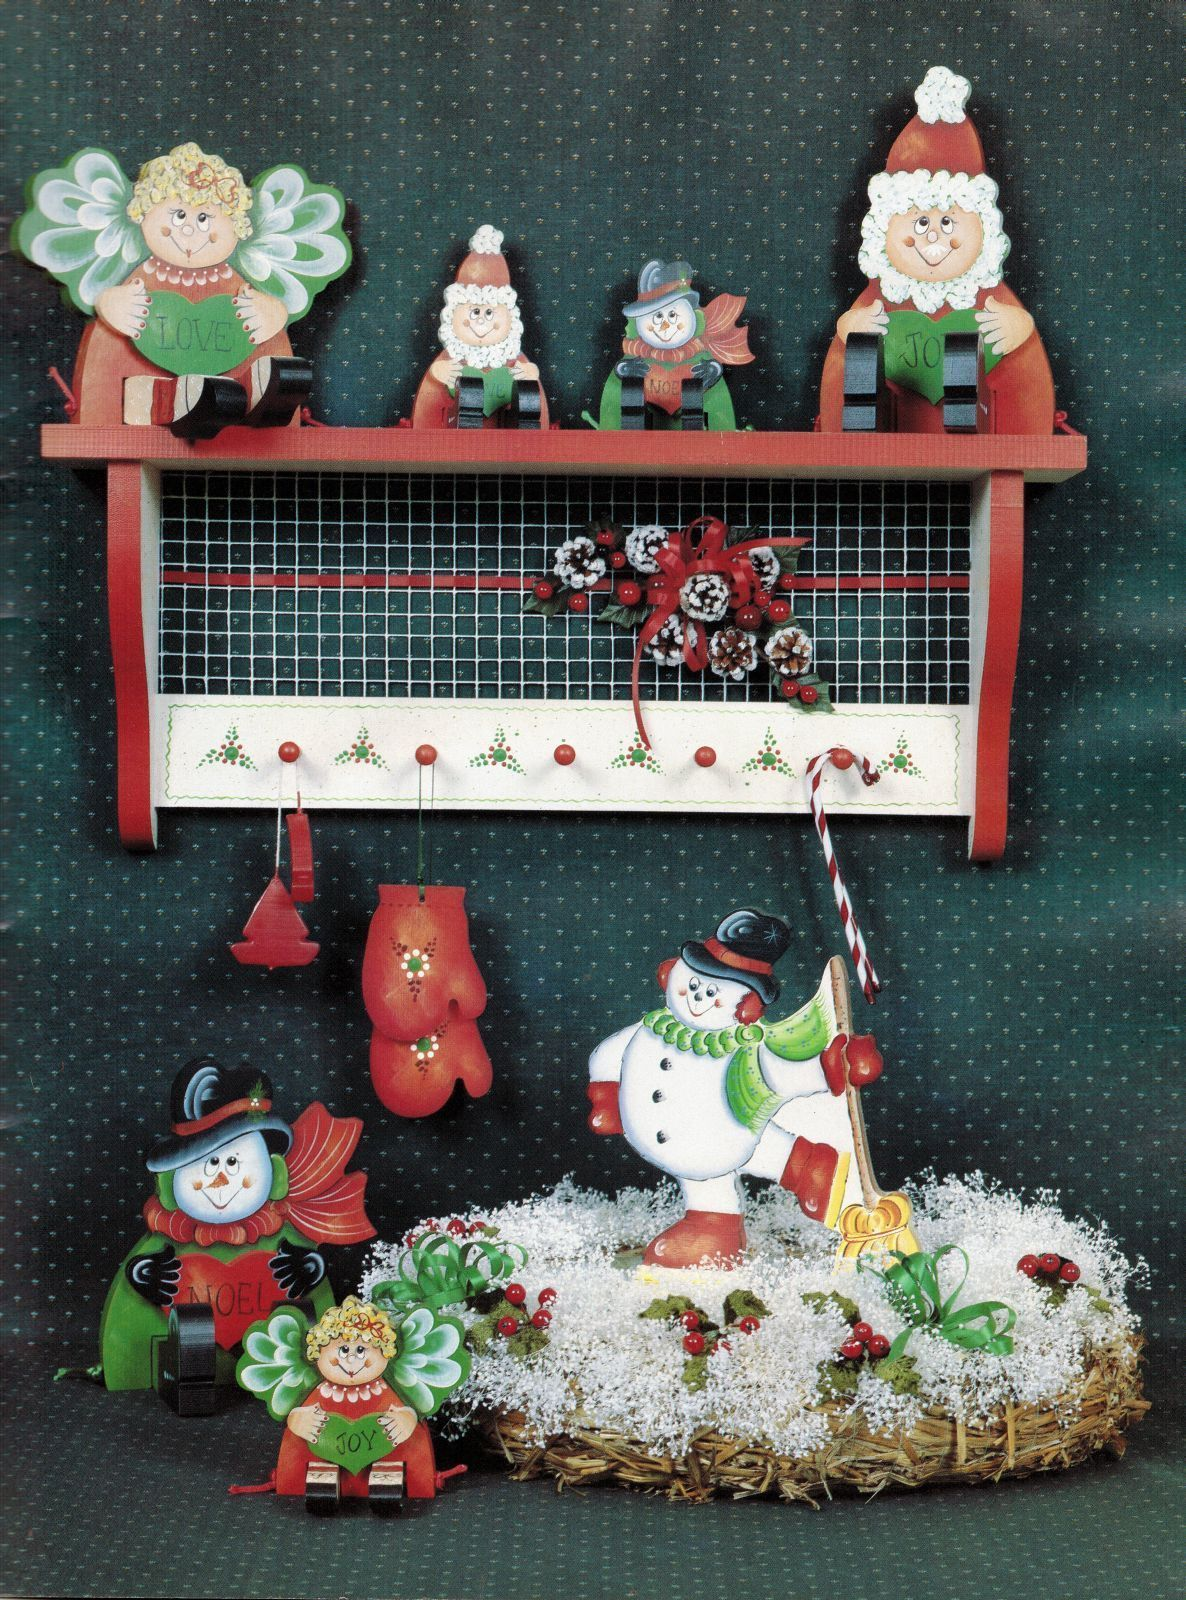 Tole Decorative Painting Christmas Halloween 4 Seasons V1 Kathy Griffiths Book